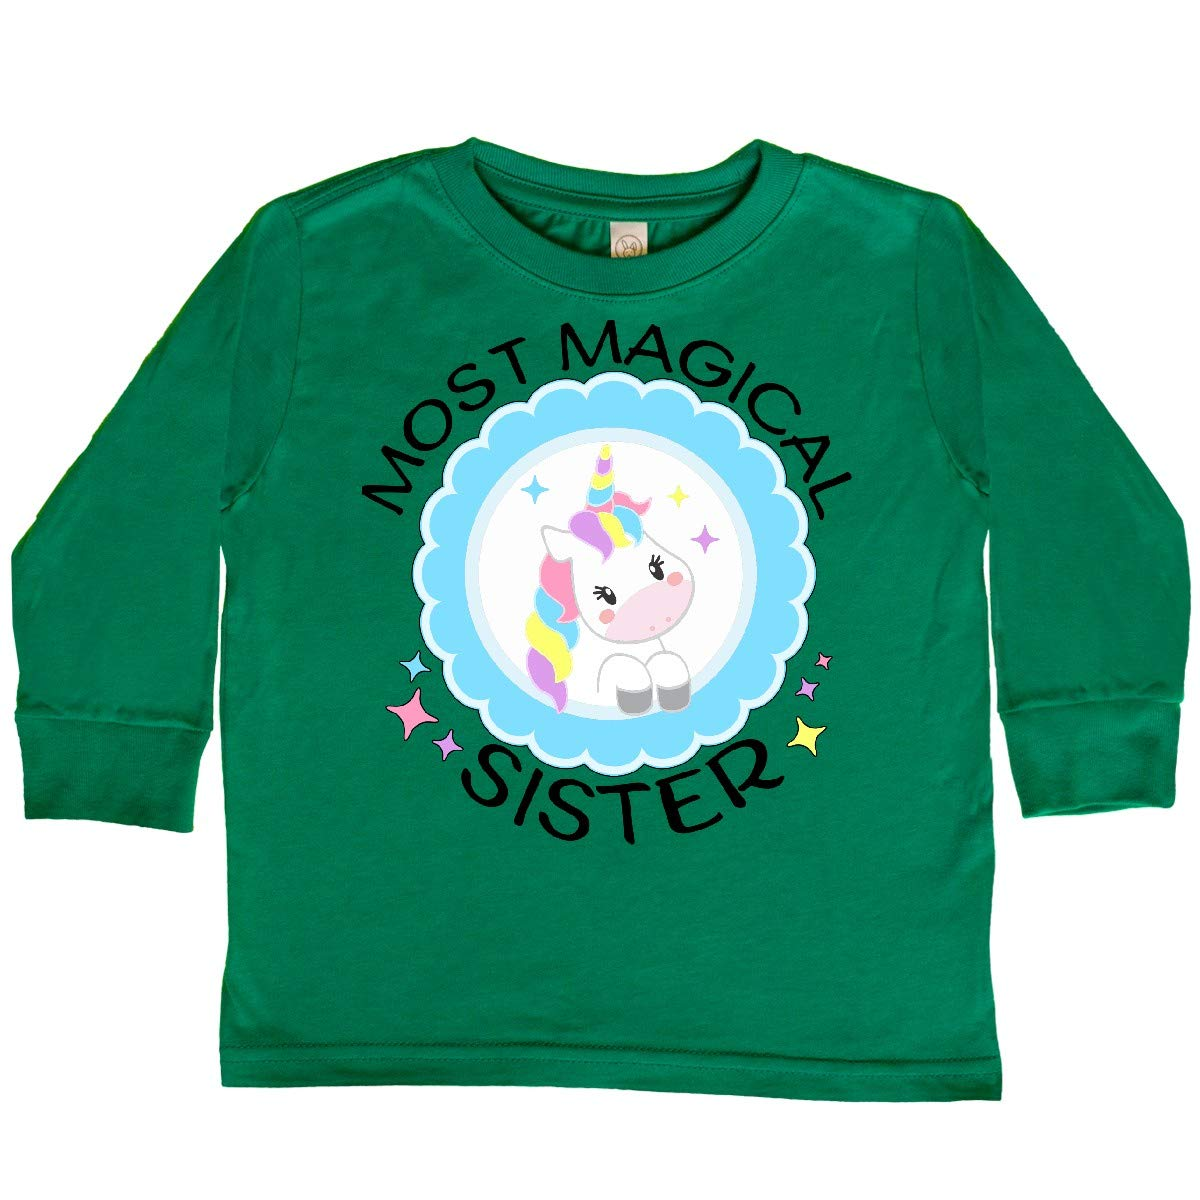 Cute Unicorn Badge Toddler Long Sleeve T-Shirt inktastic Most Magical Sister